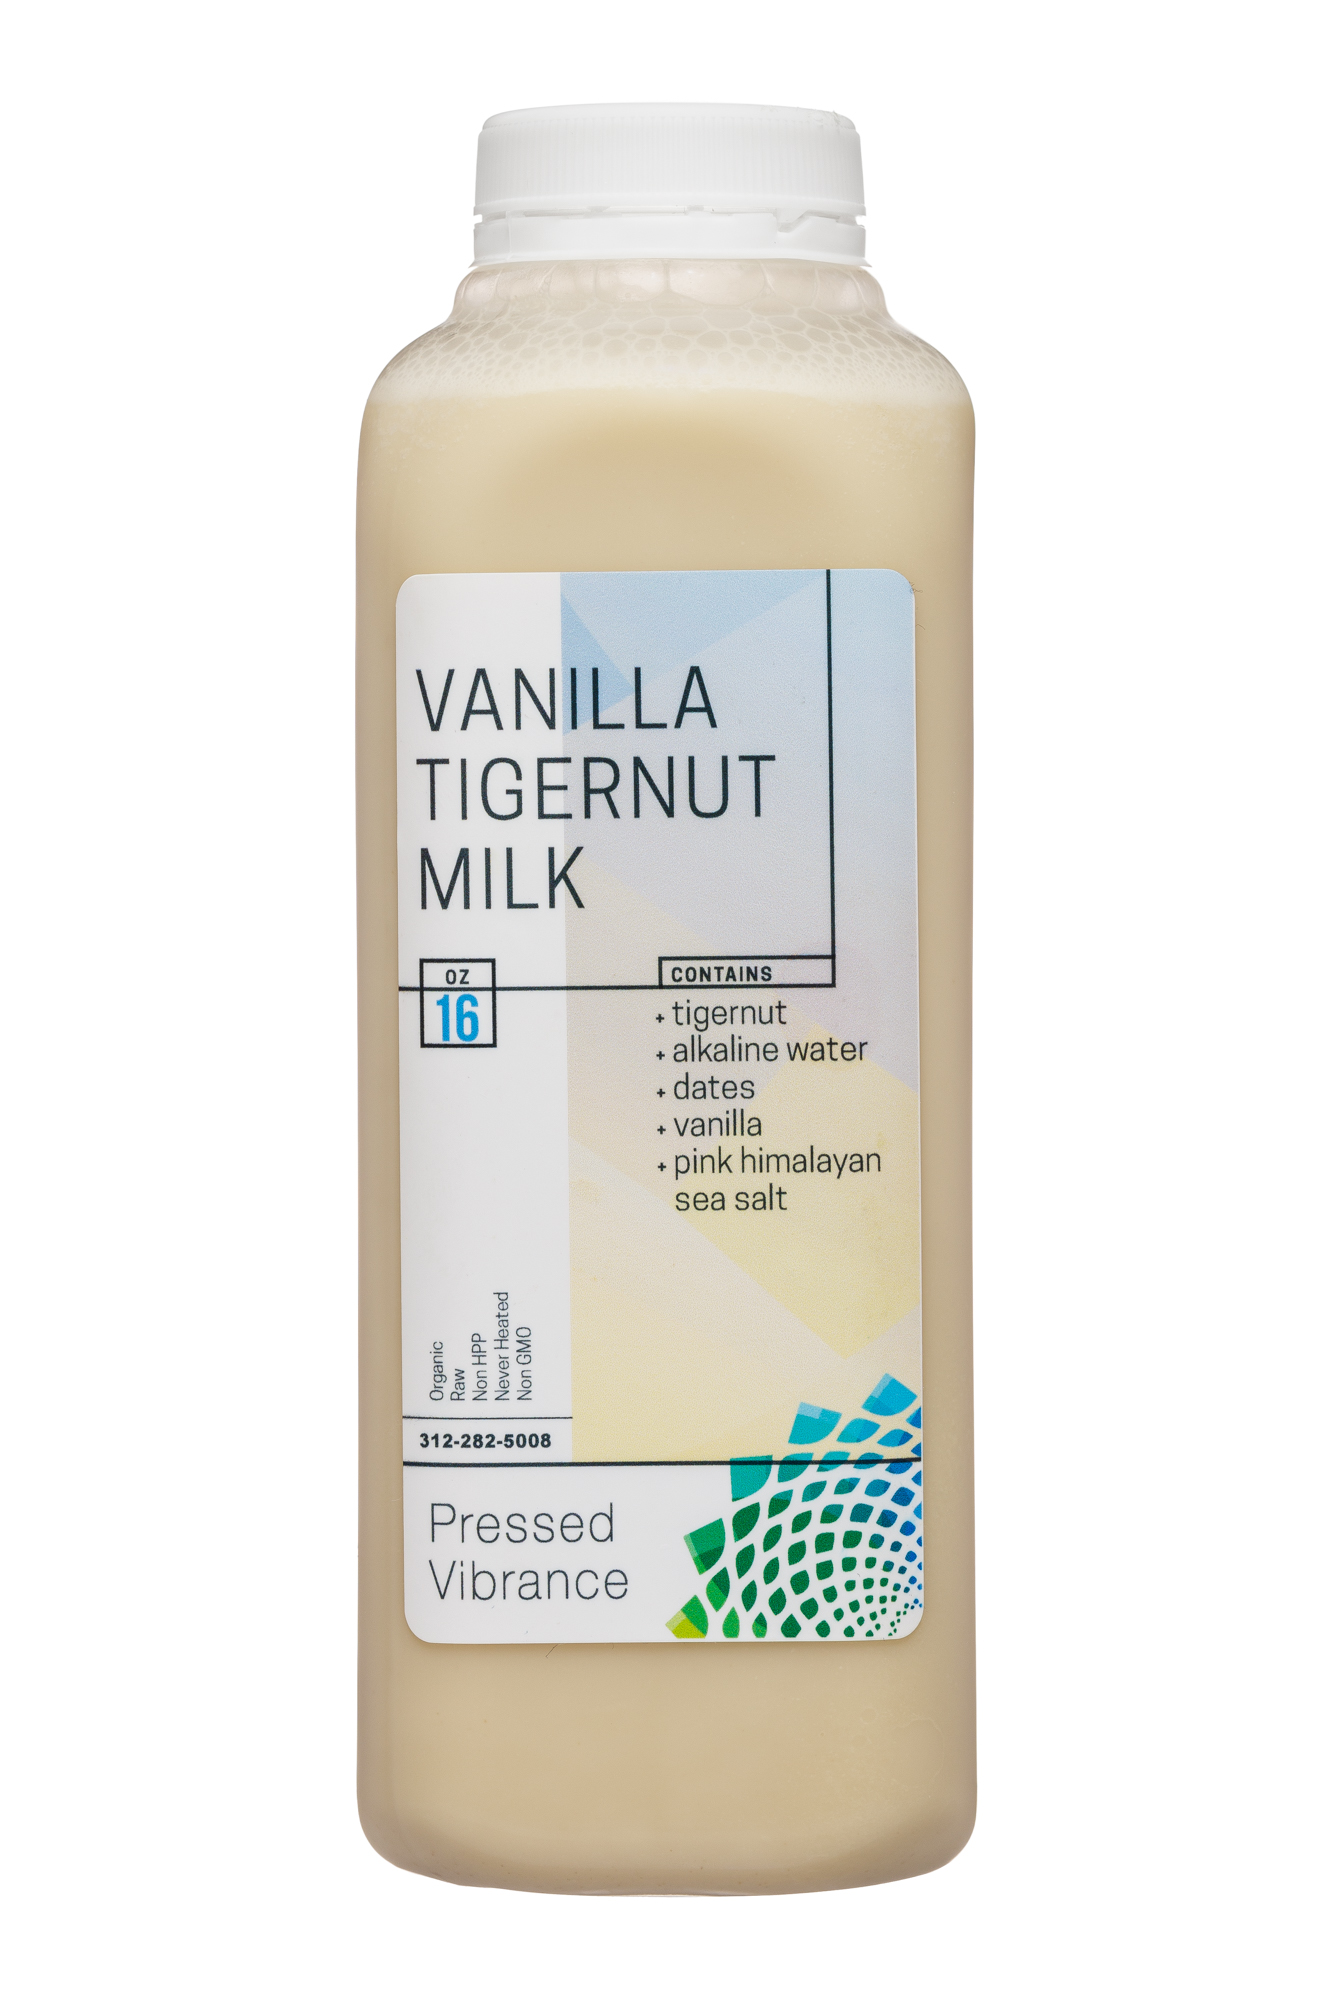 Vanilla Tigernut Milk